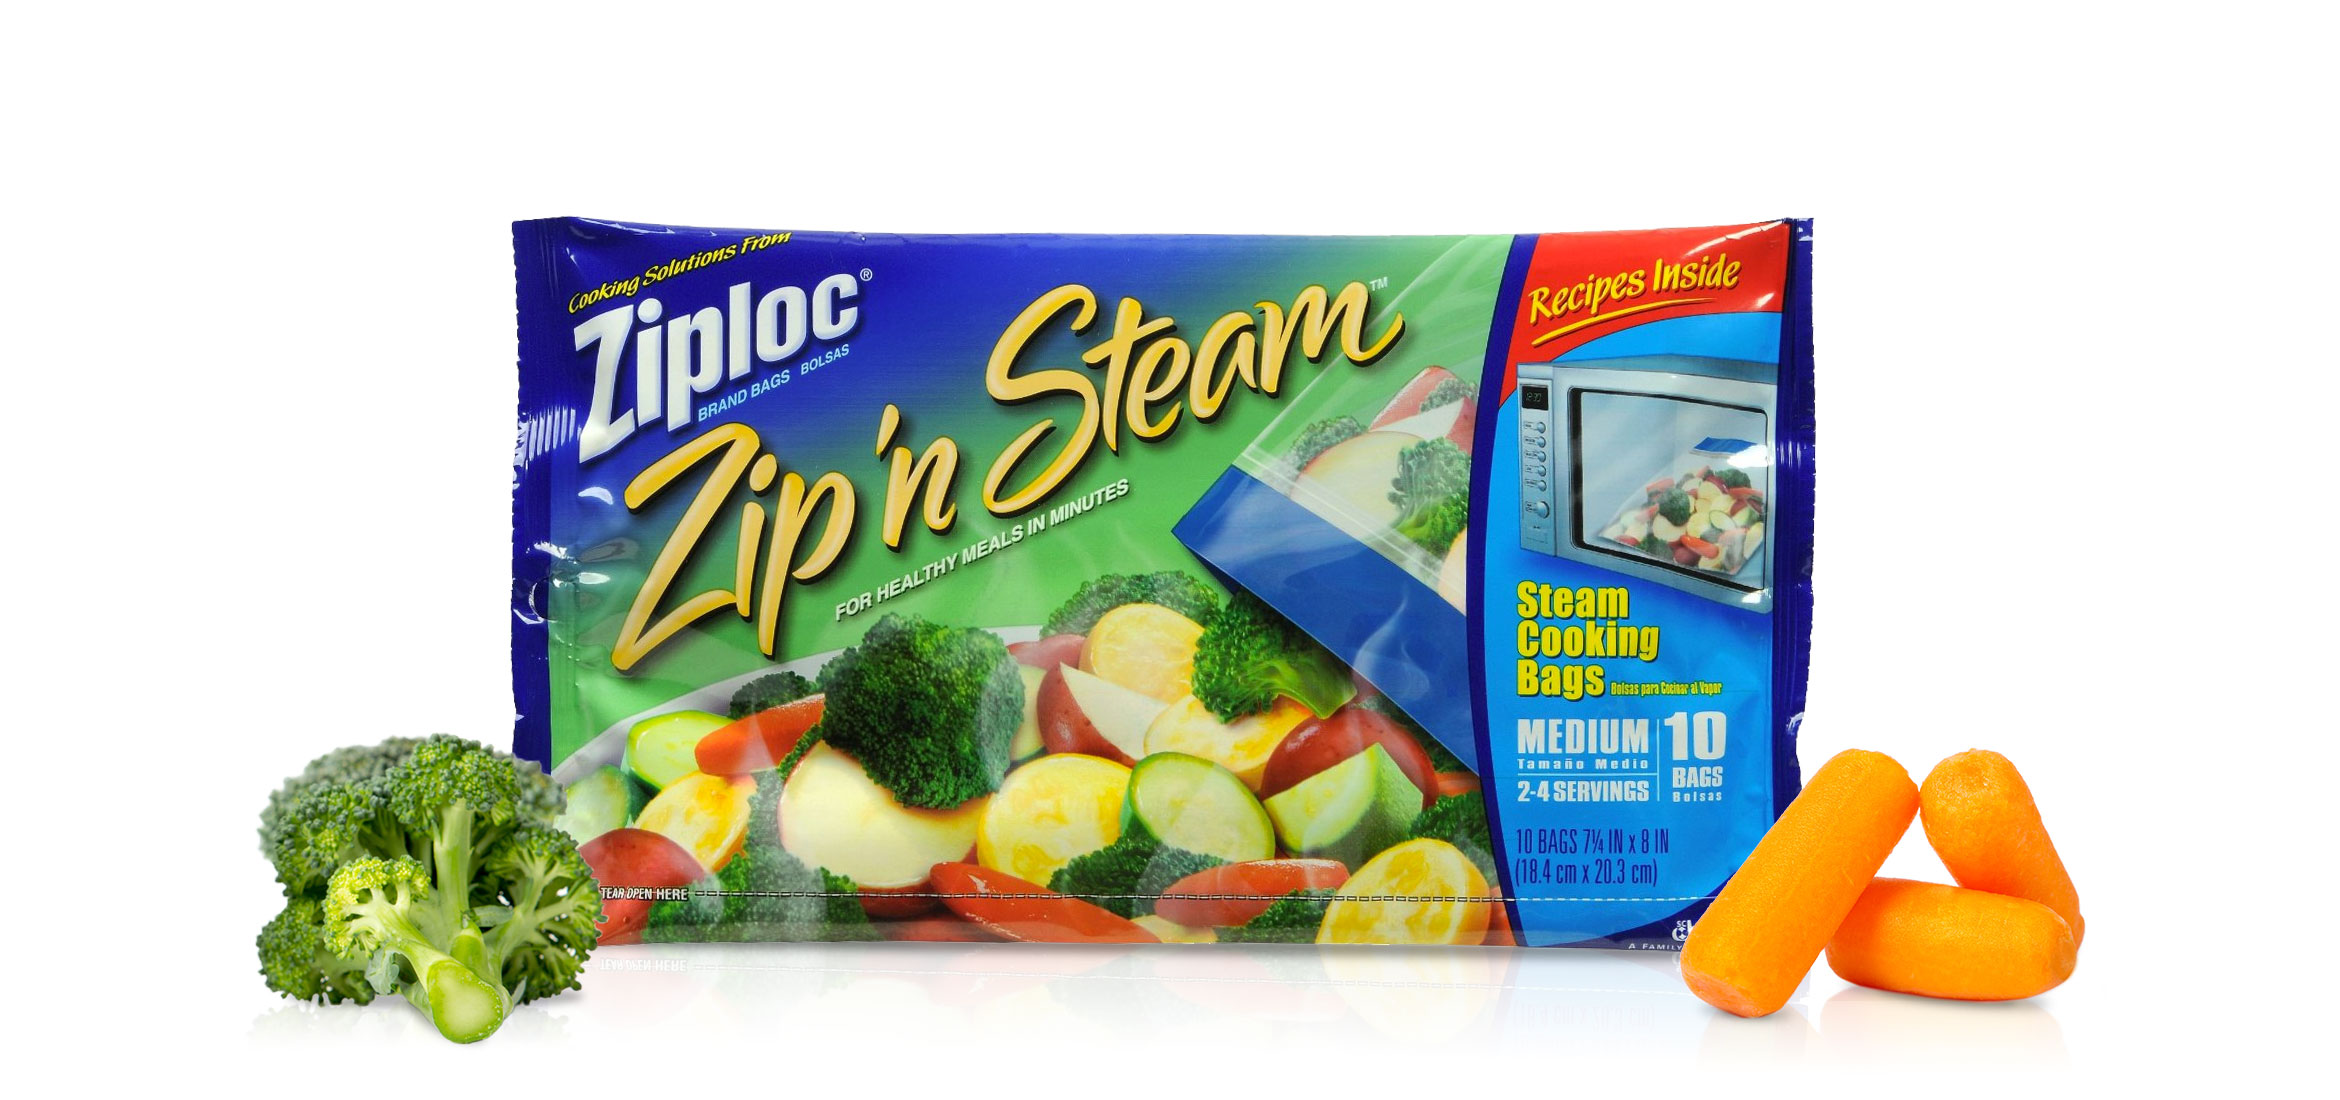 Ziploc Zip N Steam Cooking Bags Brand Sc Johnson